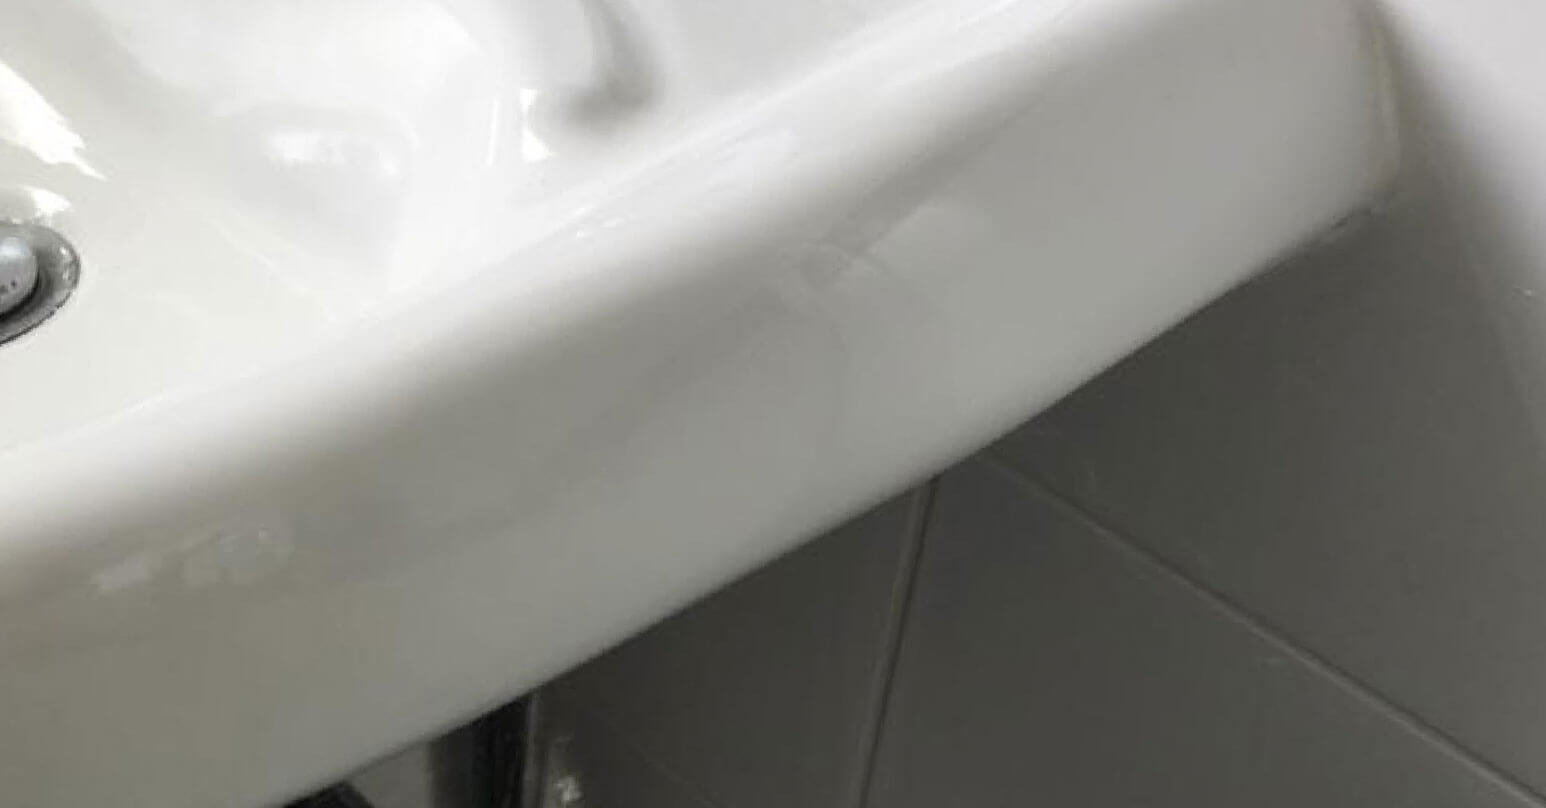 Repair to large hole in sink